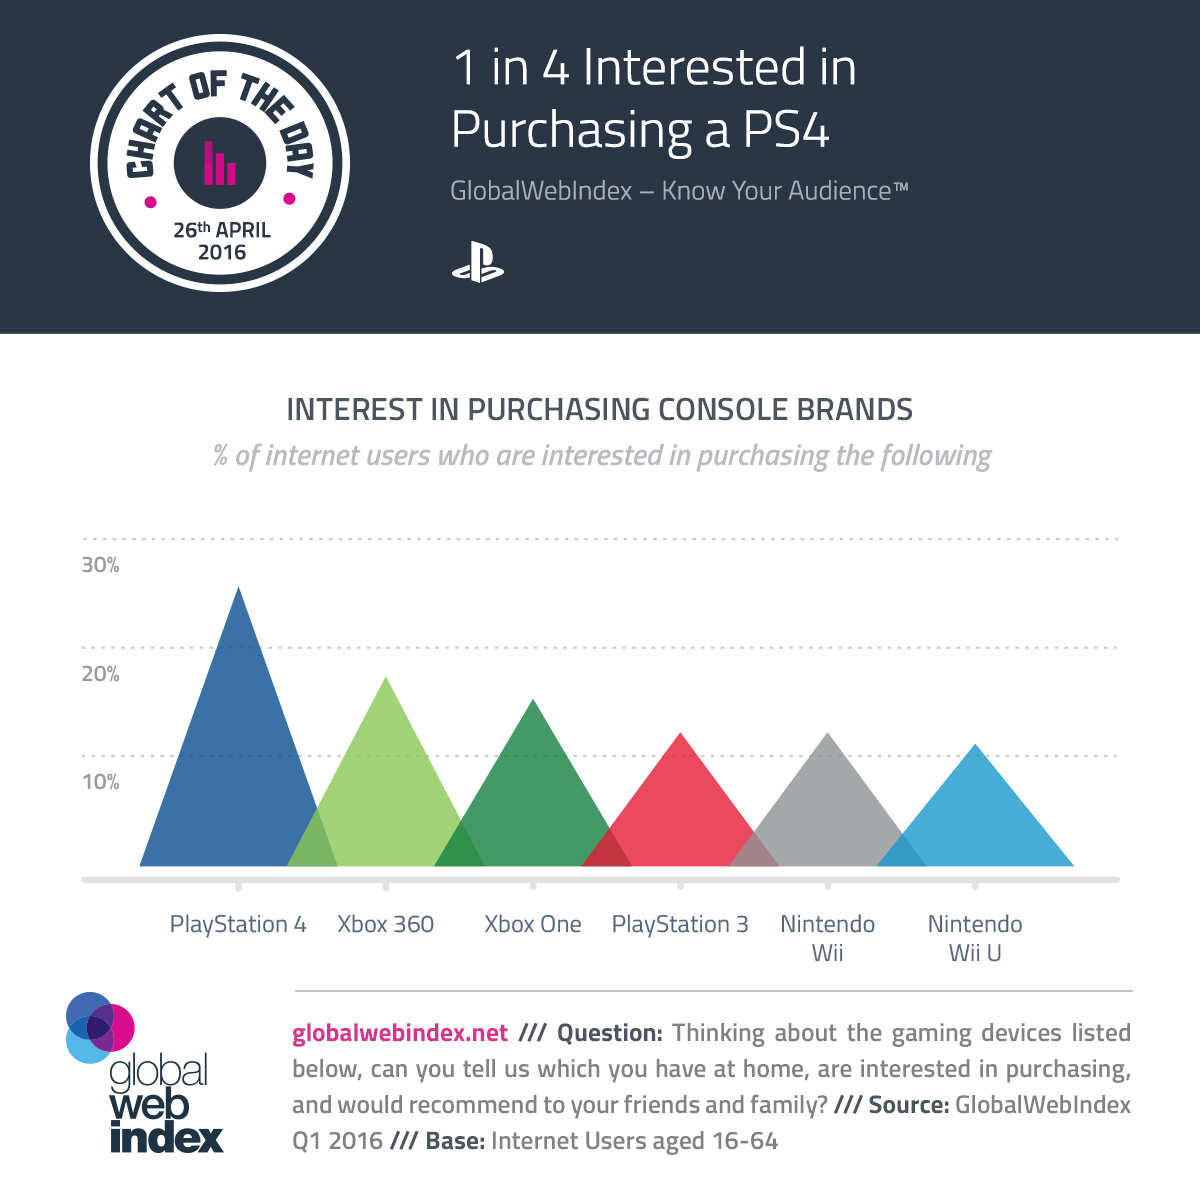 1 in 4 Interested in Purchasing a PS4